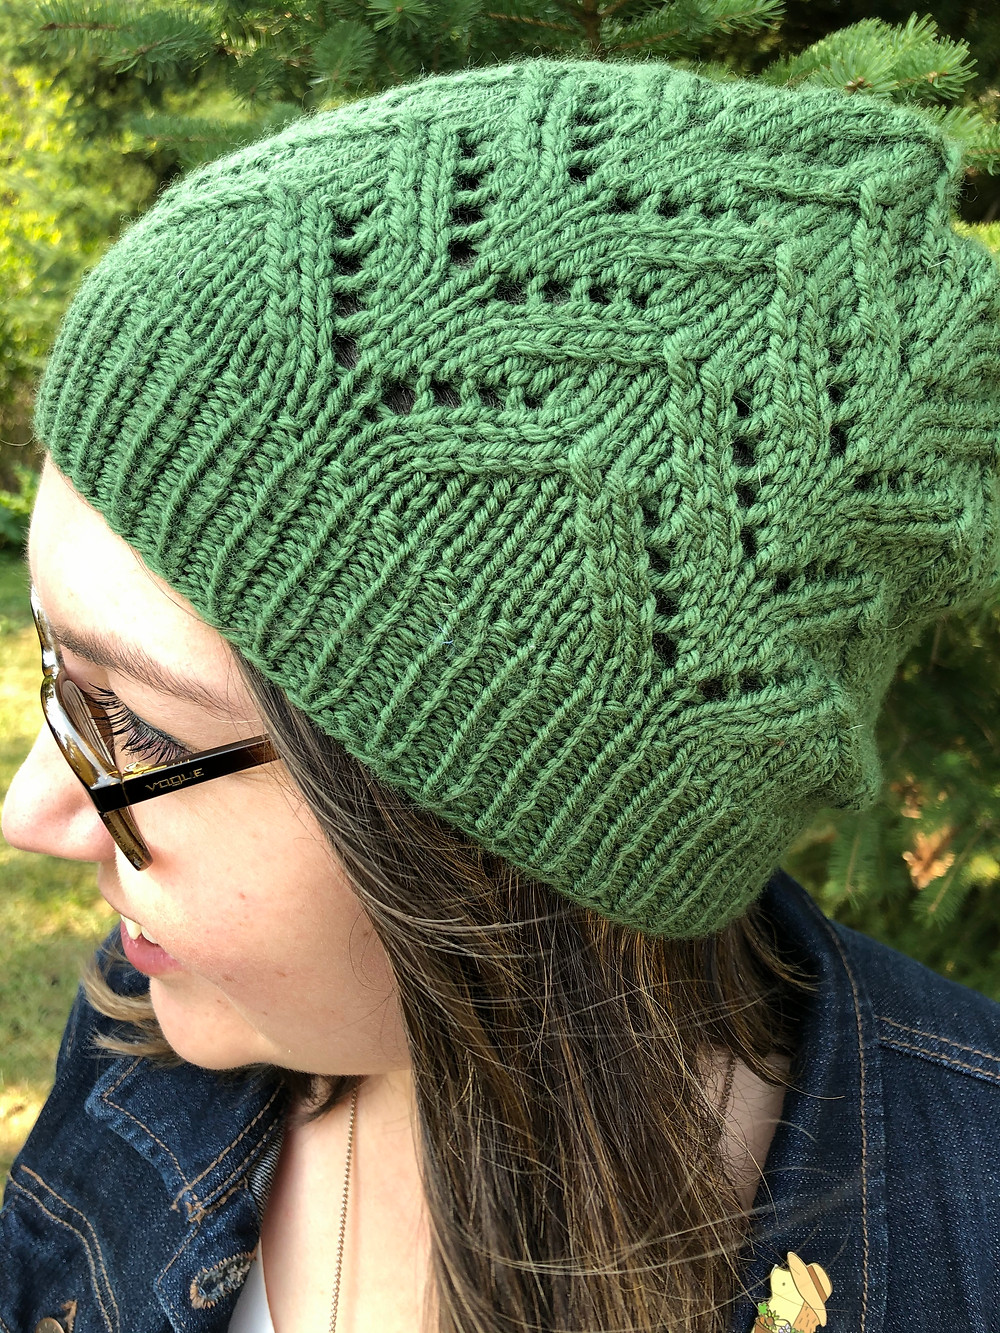 A close up of a woman wearing a green knit lace hat, with her gaze toward her right shoulder.